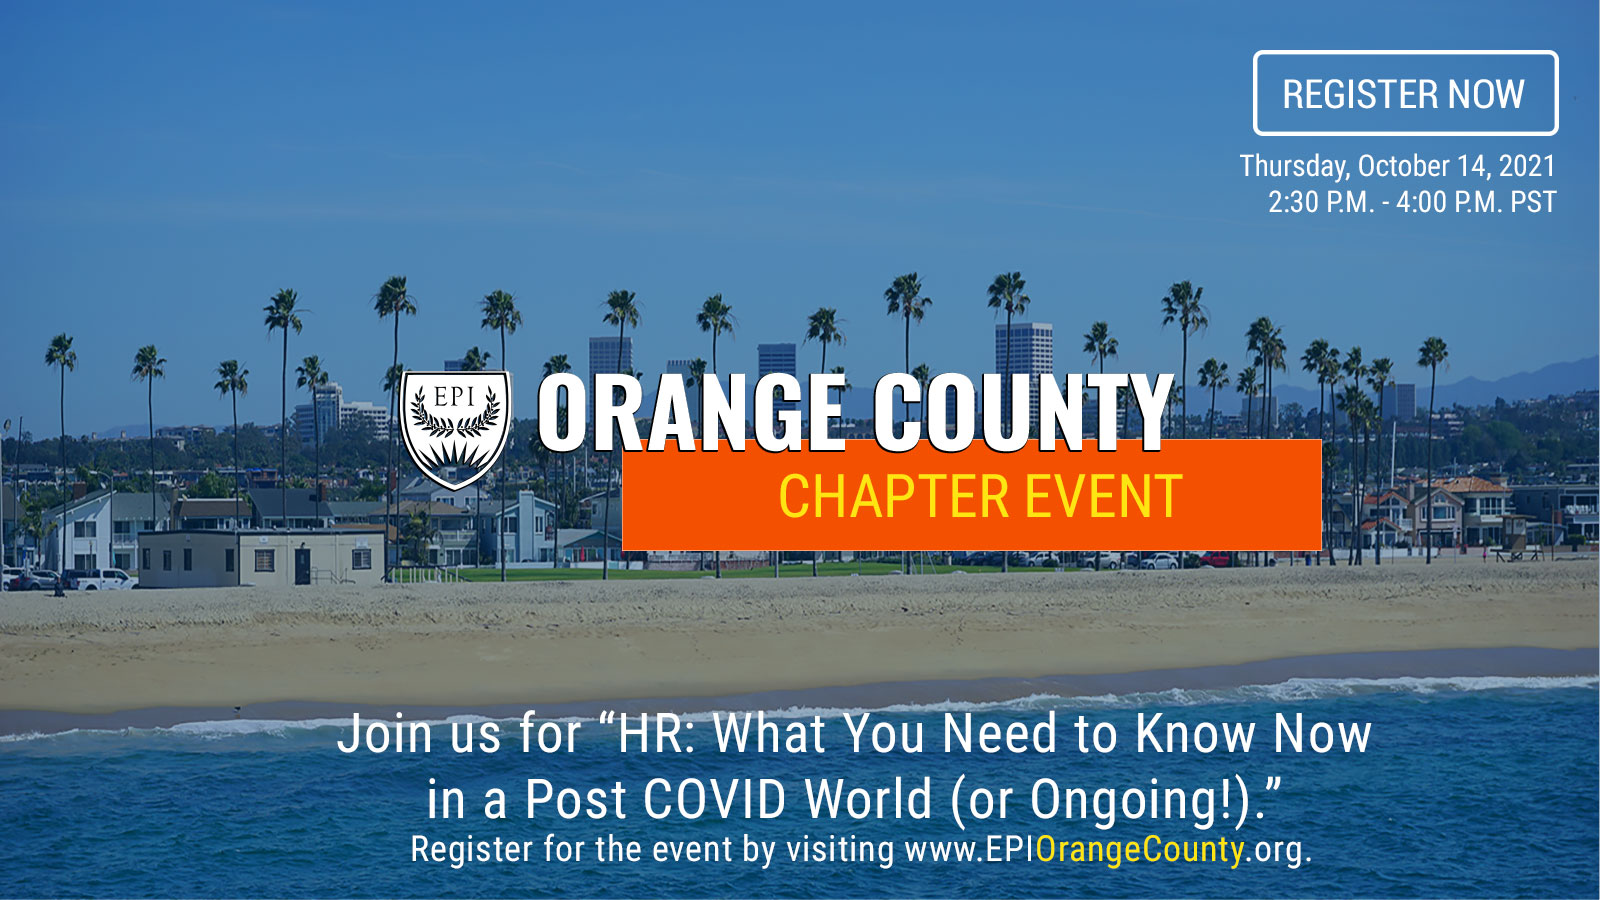 HR: What You Need to Know Now in a Post COVID World